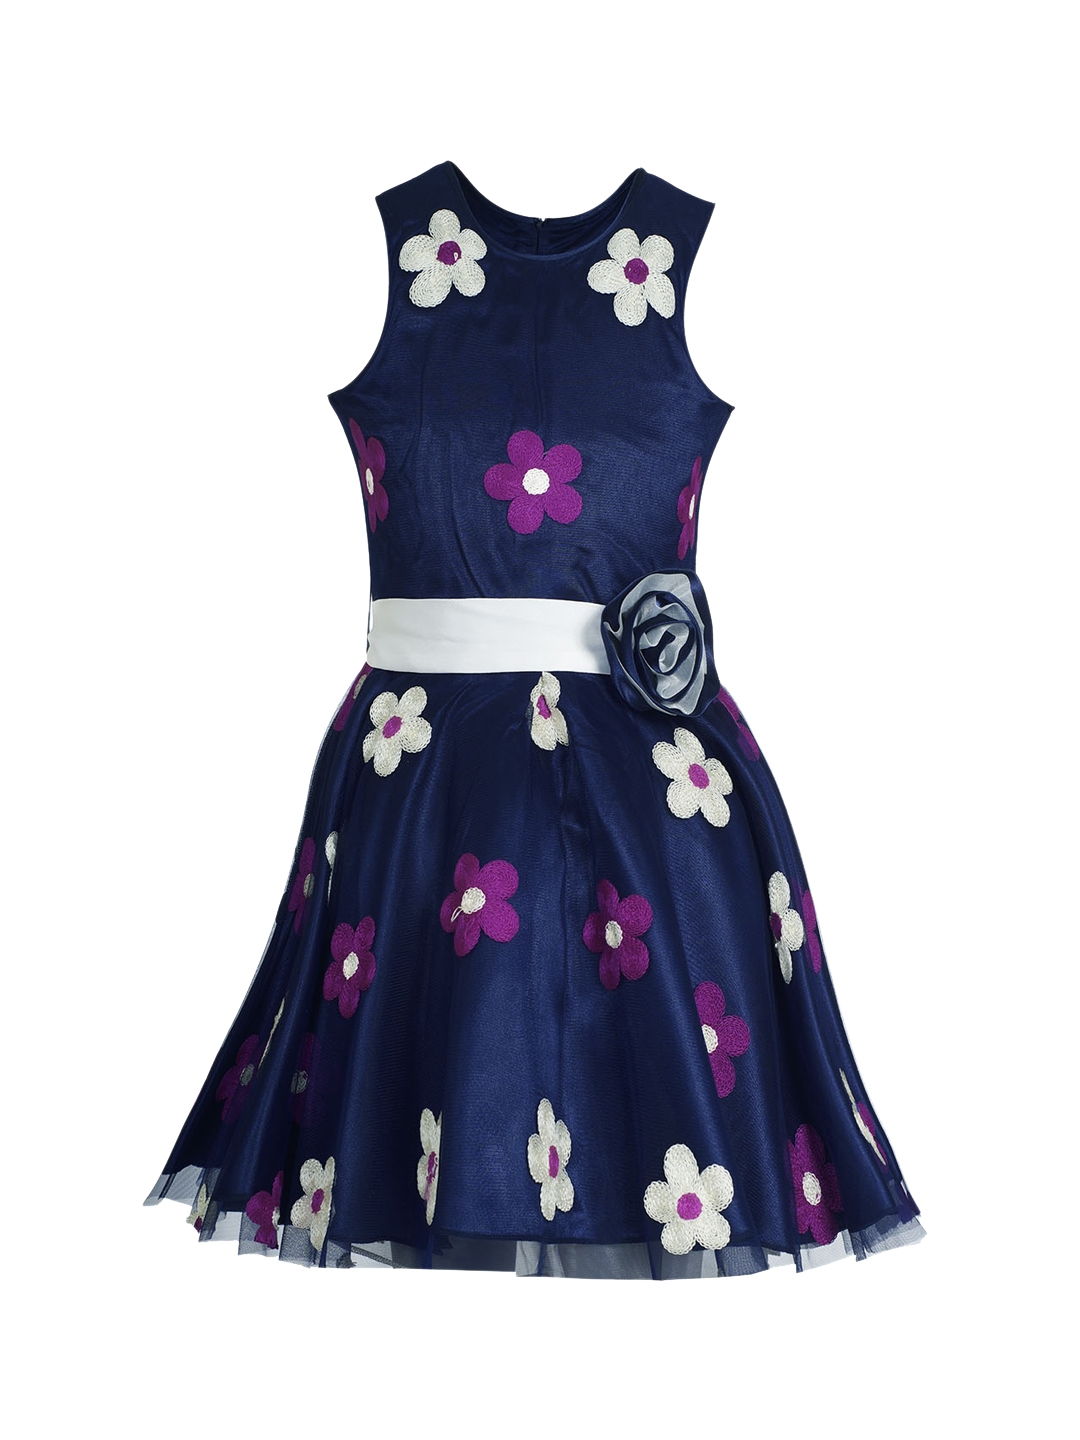 0007a4e8 Buy Naughty Ninos Girls Navy Blue Solid Fit And Flare Dress ...